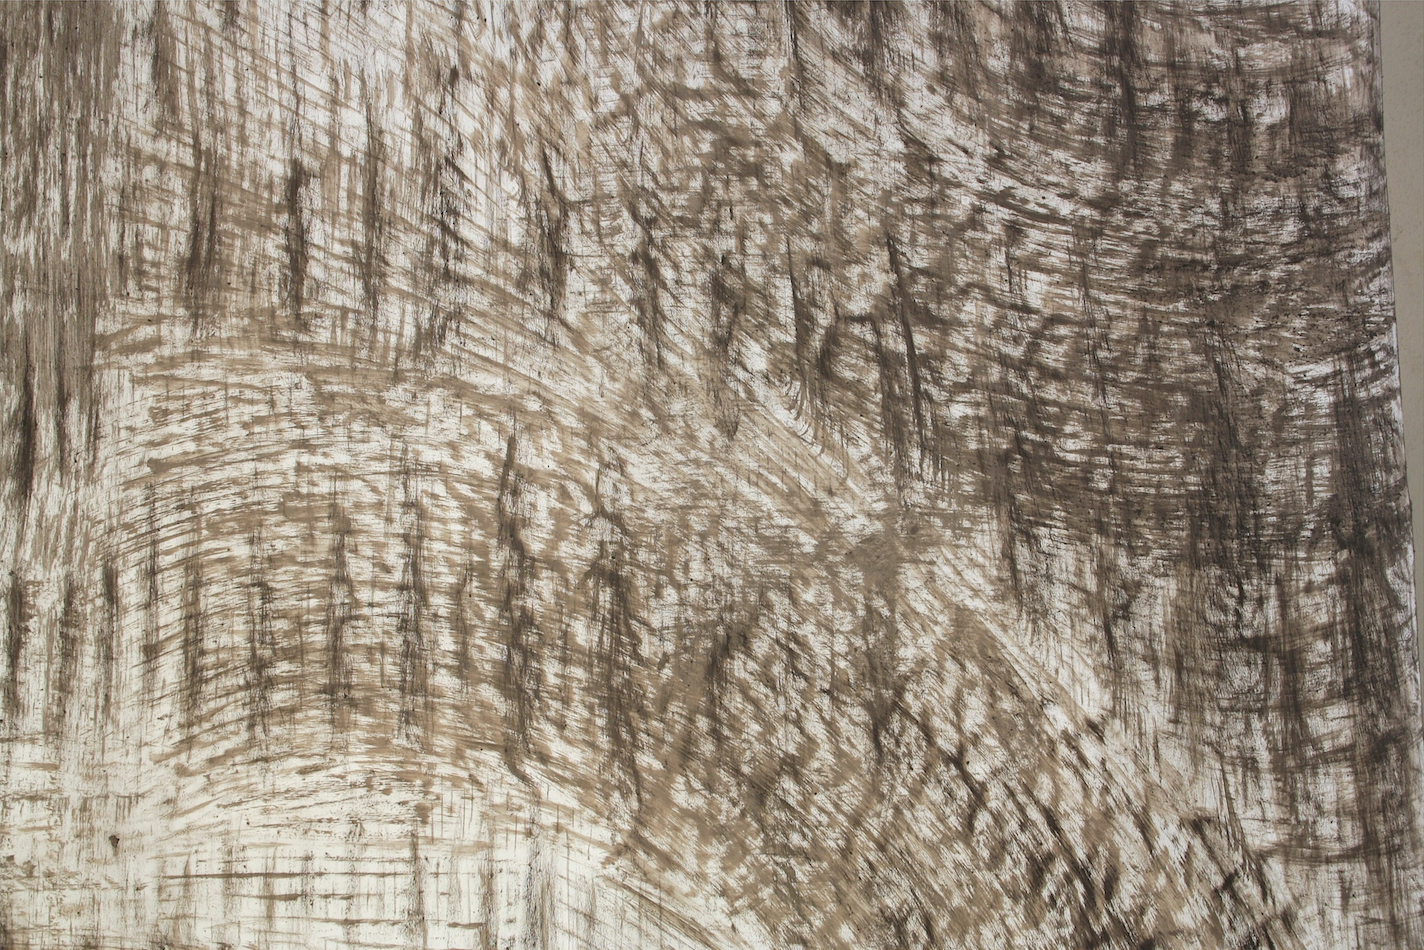 Monosema - 2017 - polyptych - ashes on paper... detail